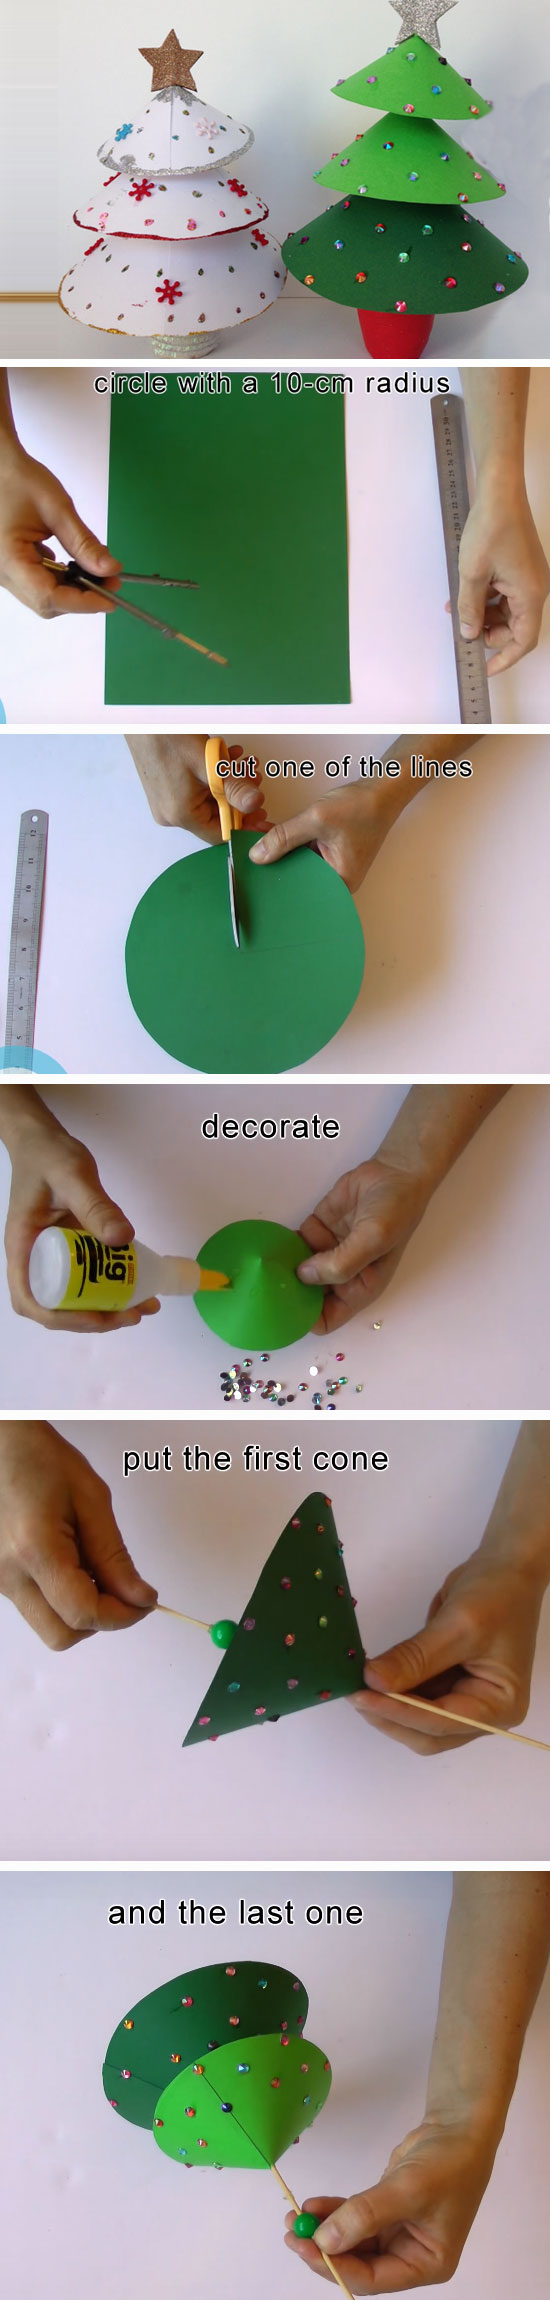 35 Super Easy DIY Christmas Crafts That Kids Can Make